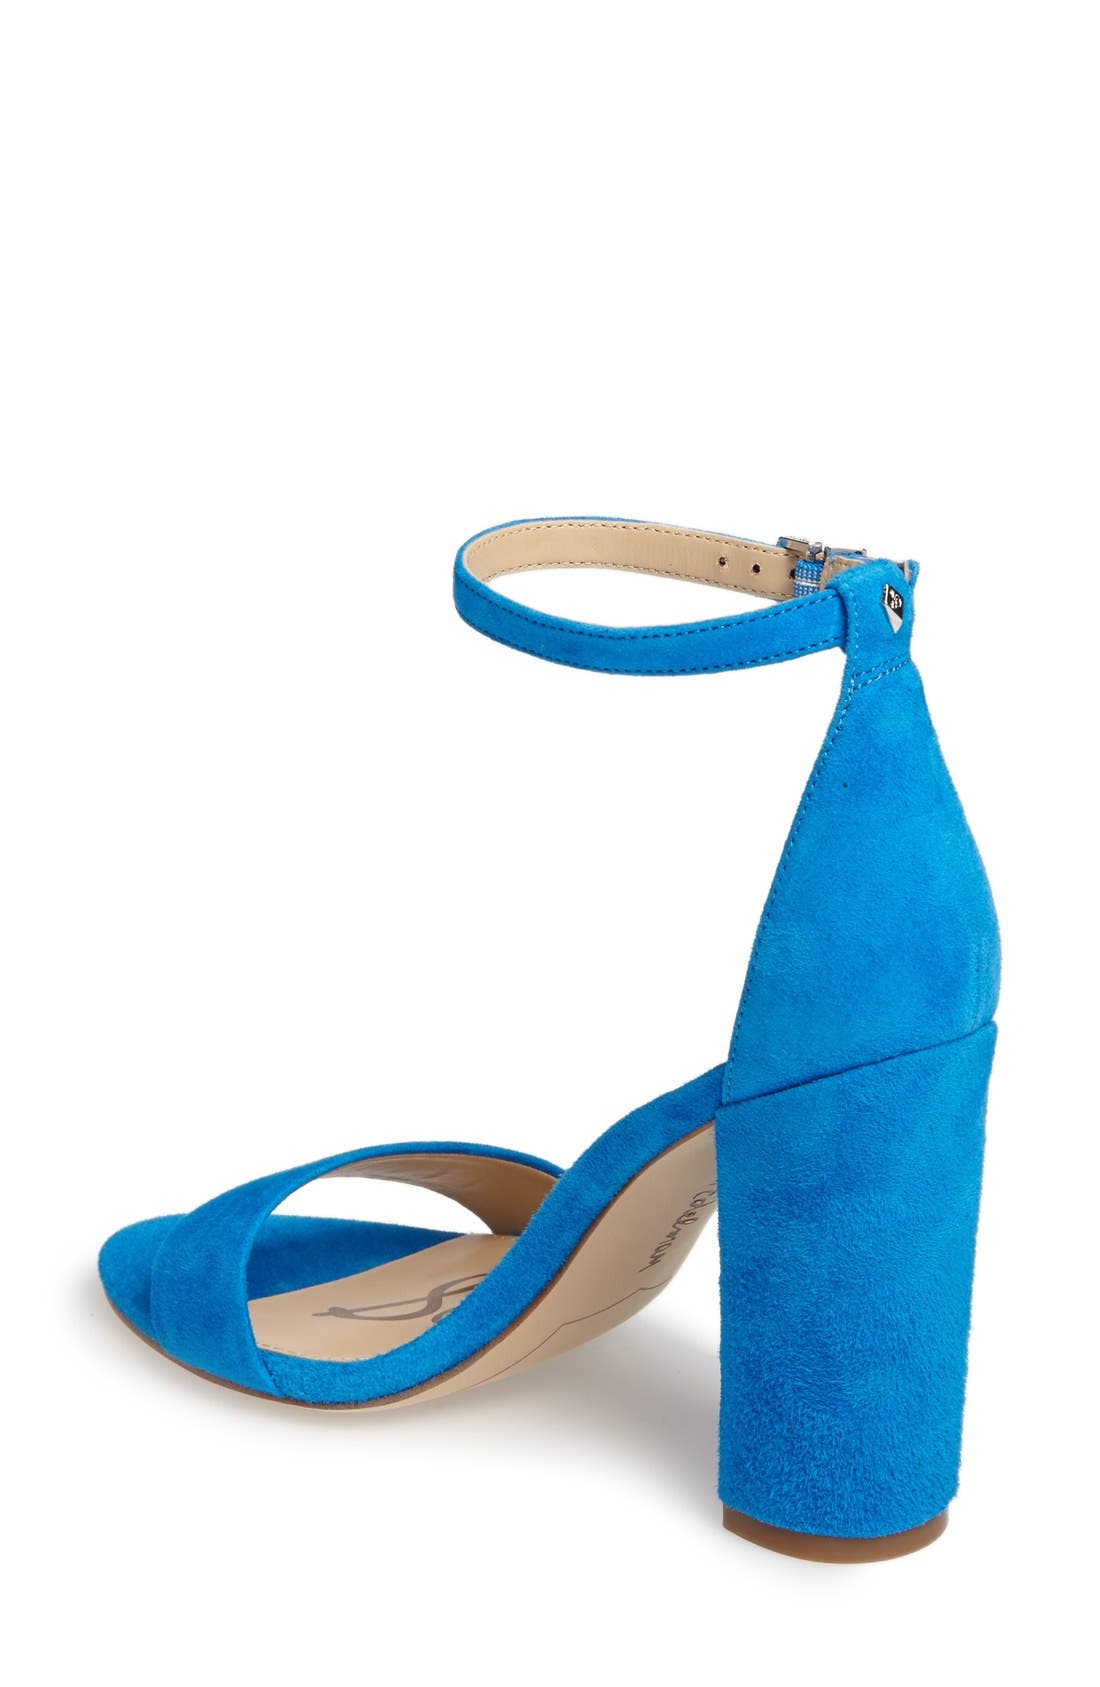 Yaro Ankle Strap Sandal,                             Alternate thumbnail 410, color,